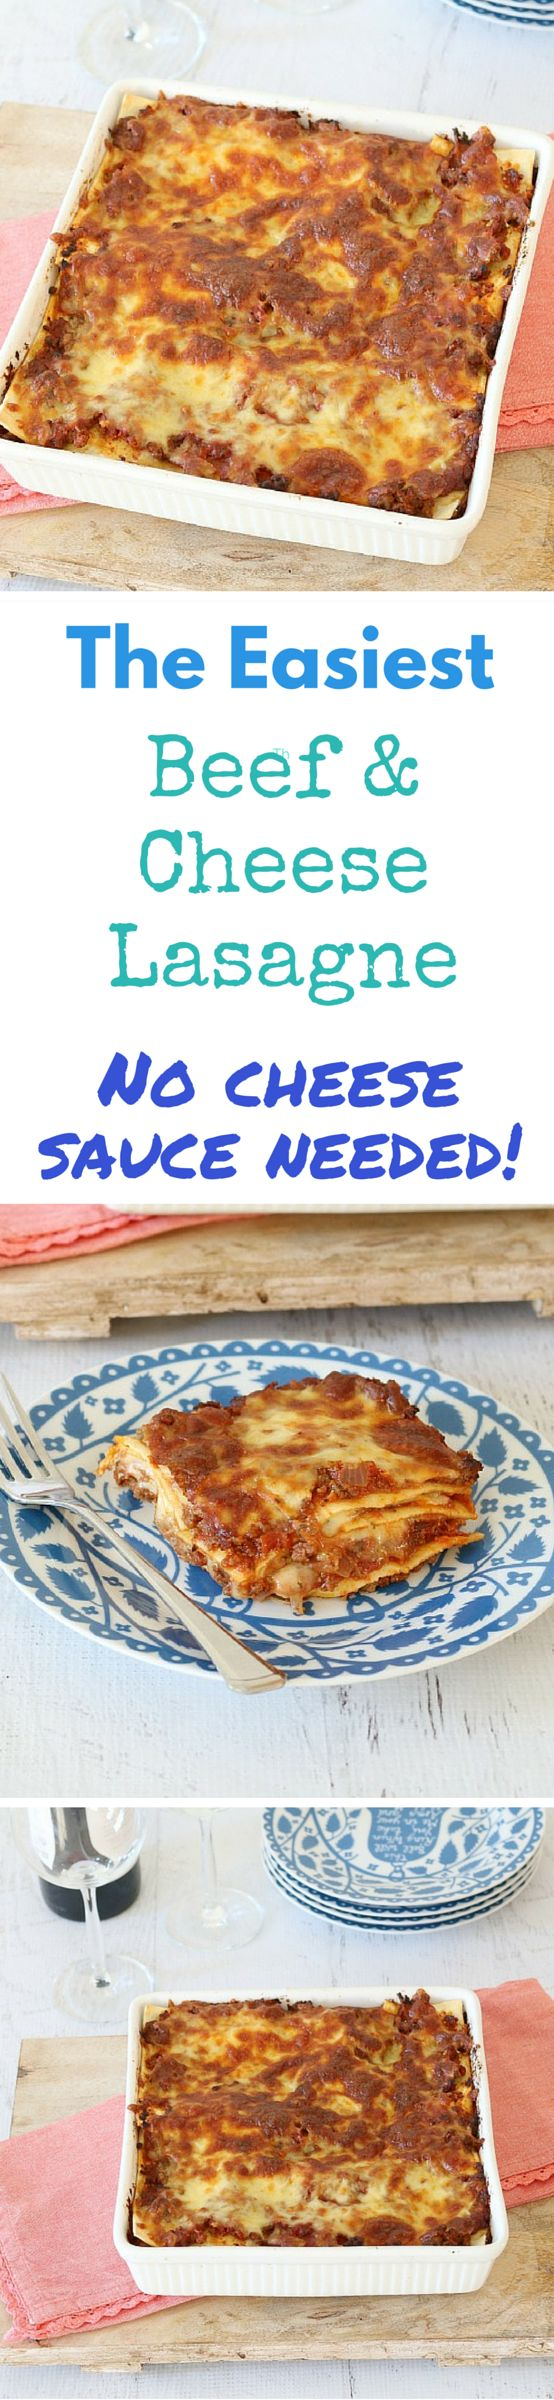 Quick & Easy Midweek Beef Lasagne - Super cheesy without the need for a béchamel sauce... so, so easy! This lasagne is on high rotation in our house!!